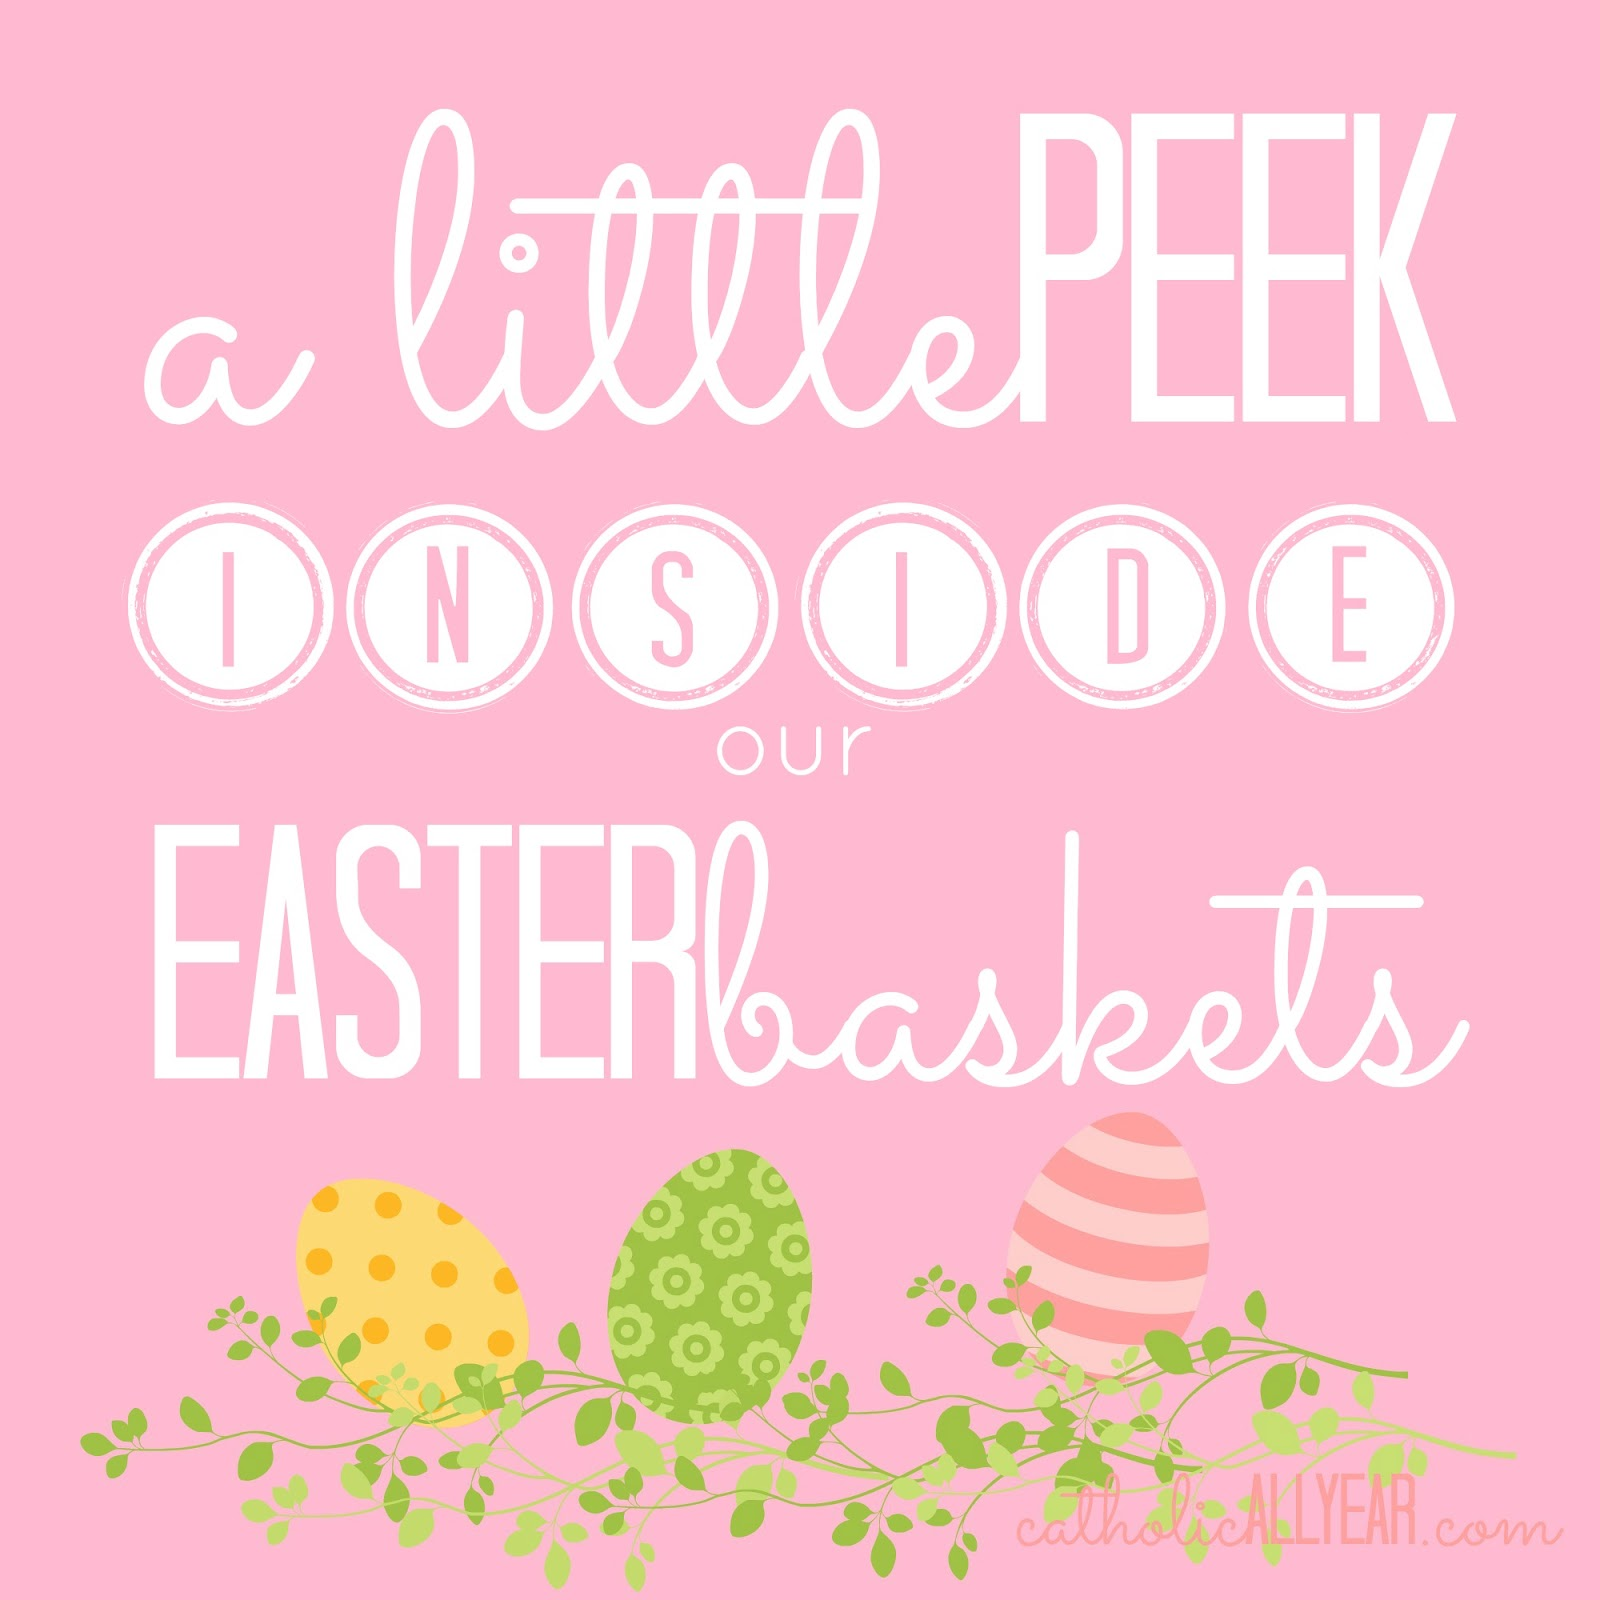 Catholic all year a little peek inside our easter baskets hint a little peek inside our easter baskets hint its mostly books plusgift ideas and new easter printables negle Choice Image